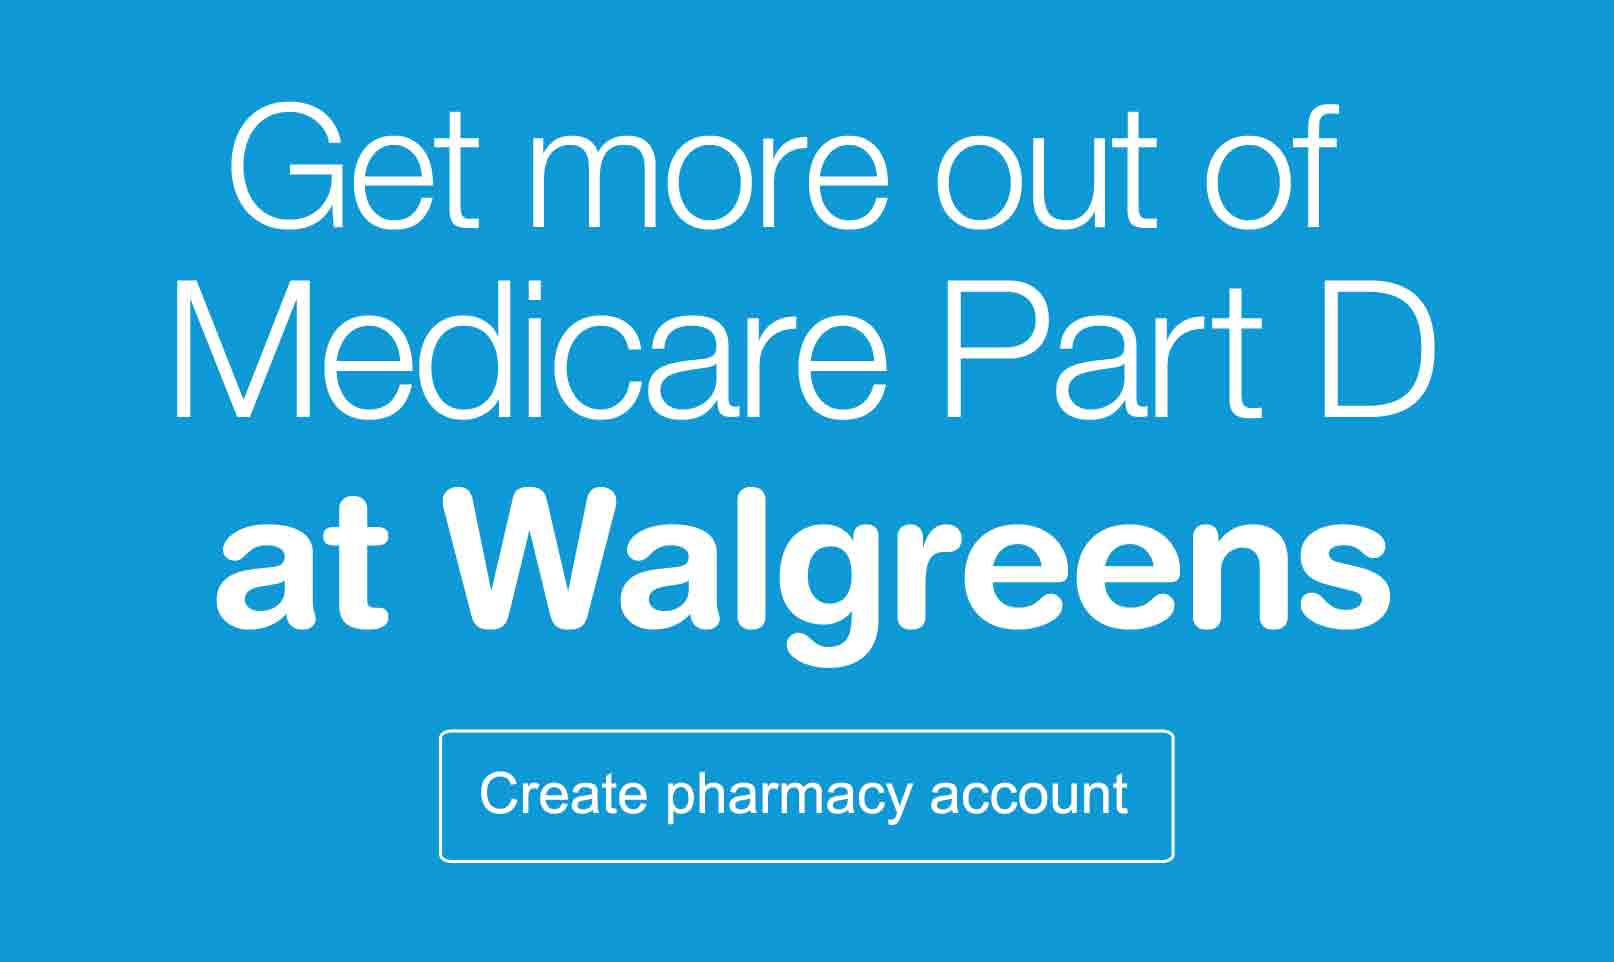 Medicare Part D Pharmacy Services | Walgreens